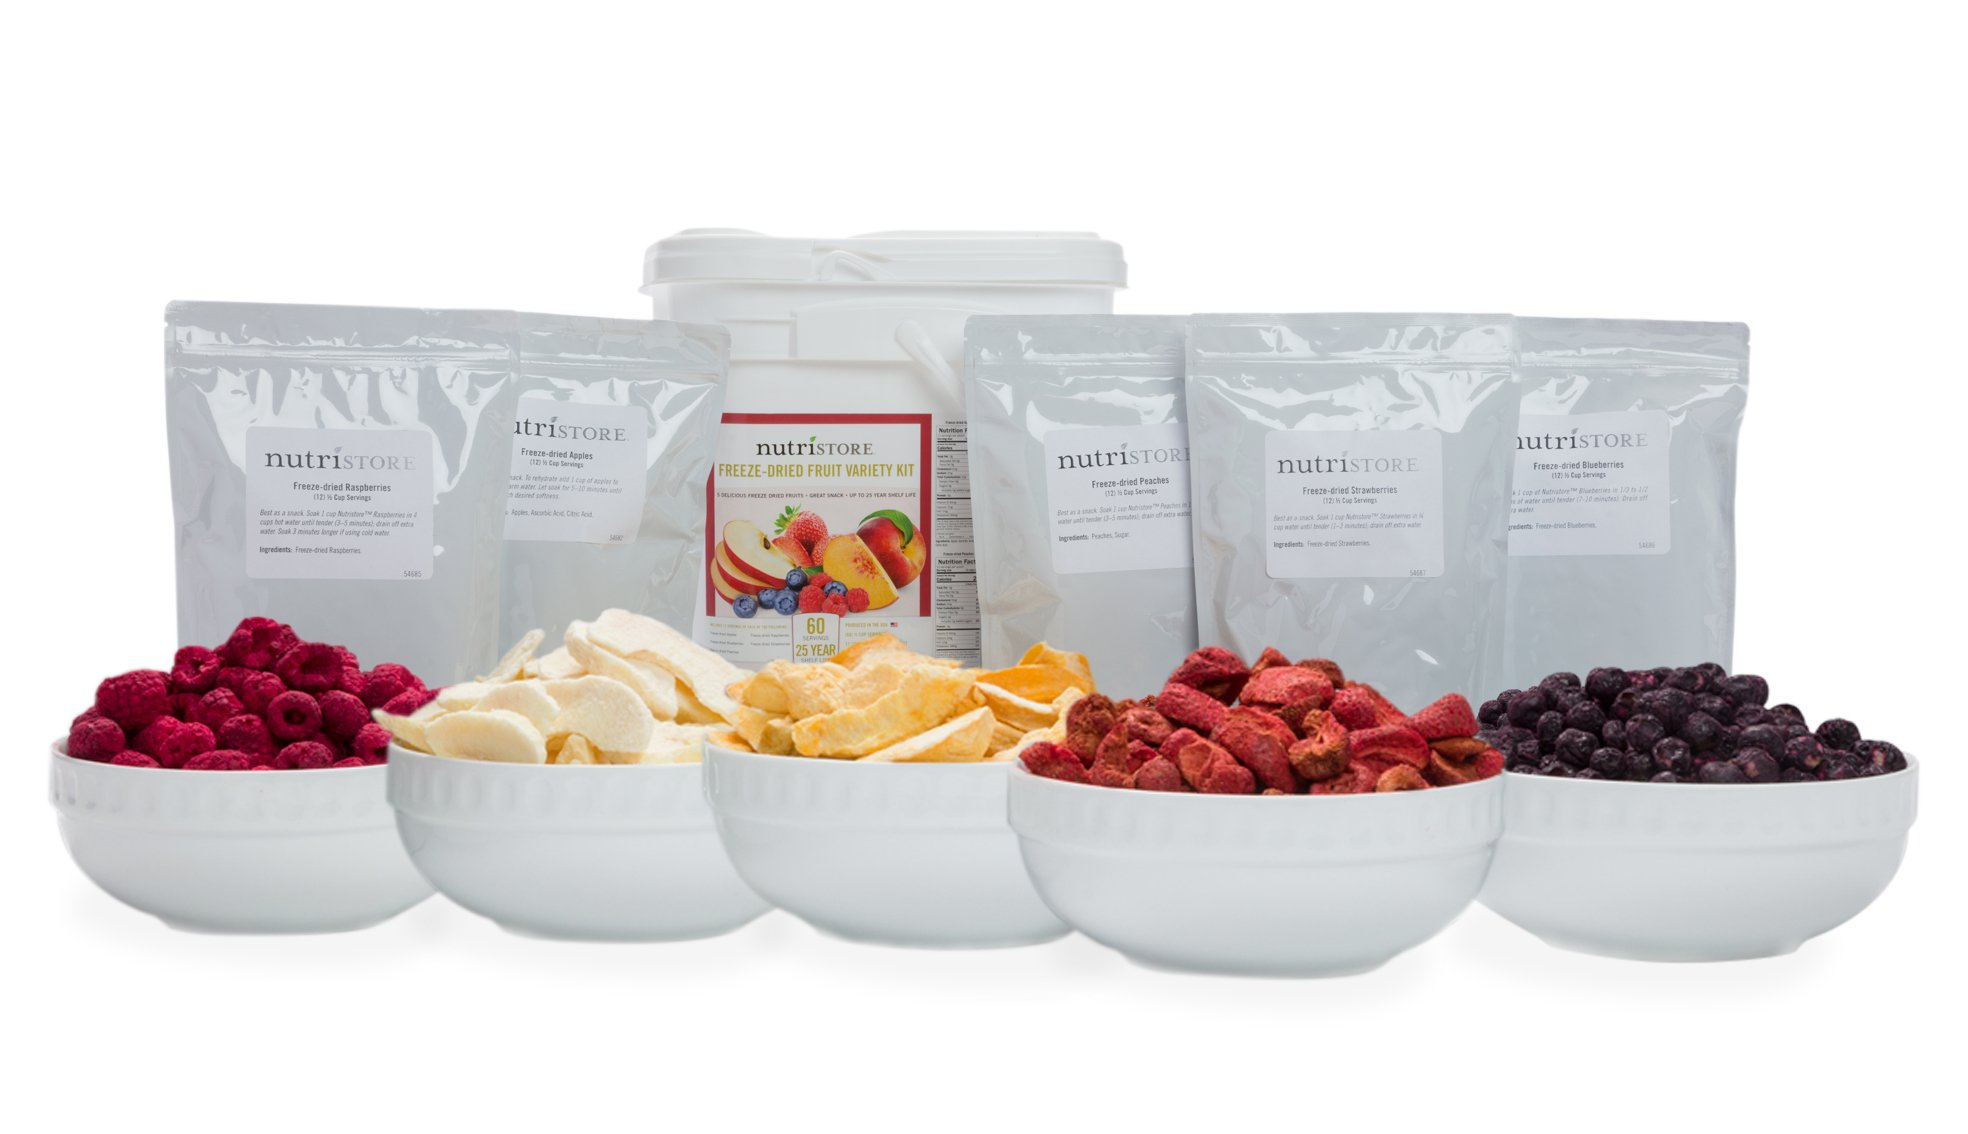 Nutristore Freeze Dried Fruit Variety Bucket by Healthy Snacks  Premium Taste and Quality   Survival Food   1 Month Supply